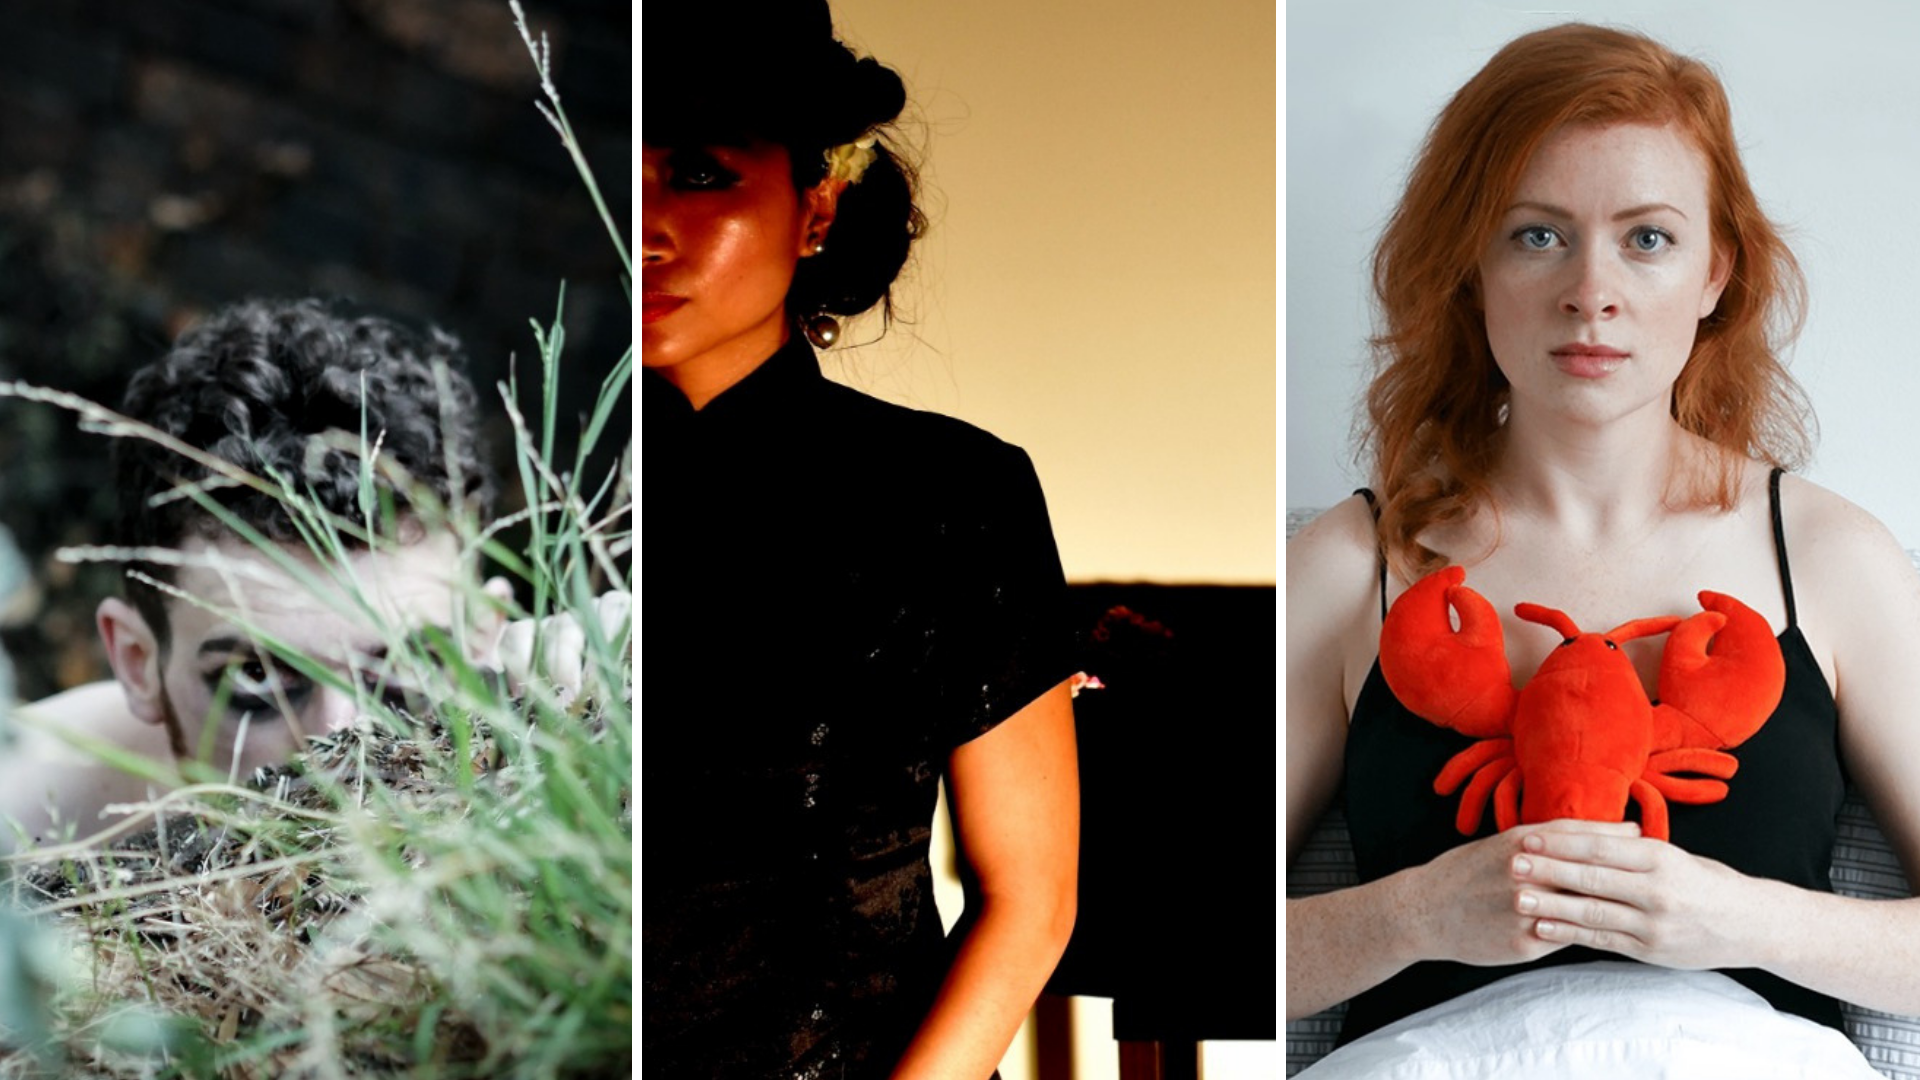 Fine at Fringe grant recipients - Jake Matricardi with 'Gargoyle', Lansy Feng with 'How I Met My Dead Husband', and Spinning Plates Co with 'Ross and Rachel'.